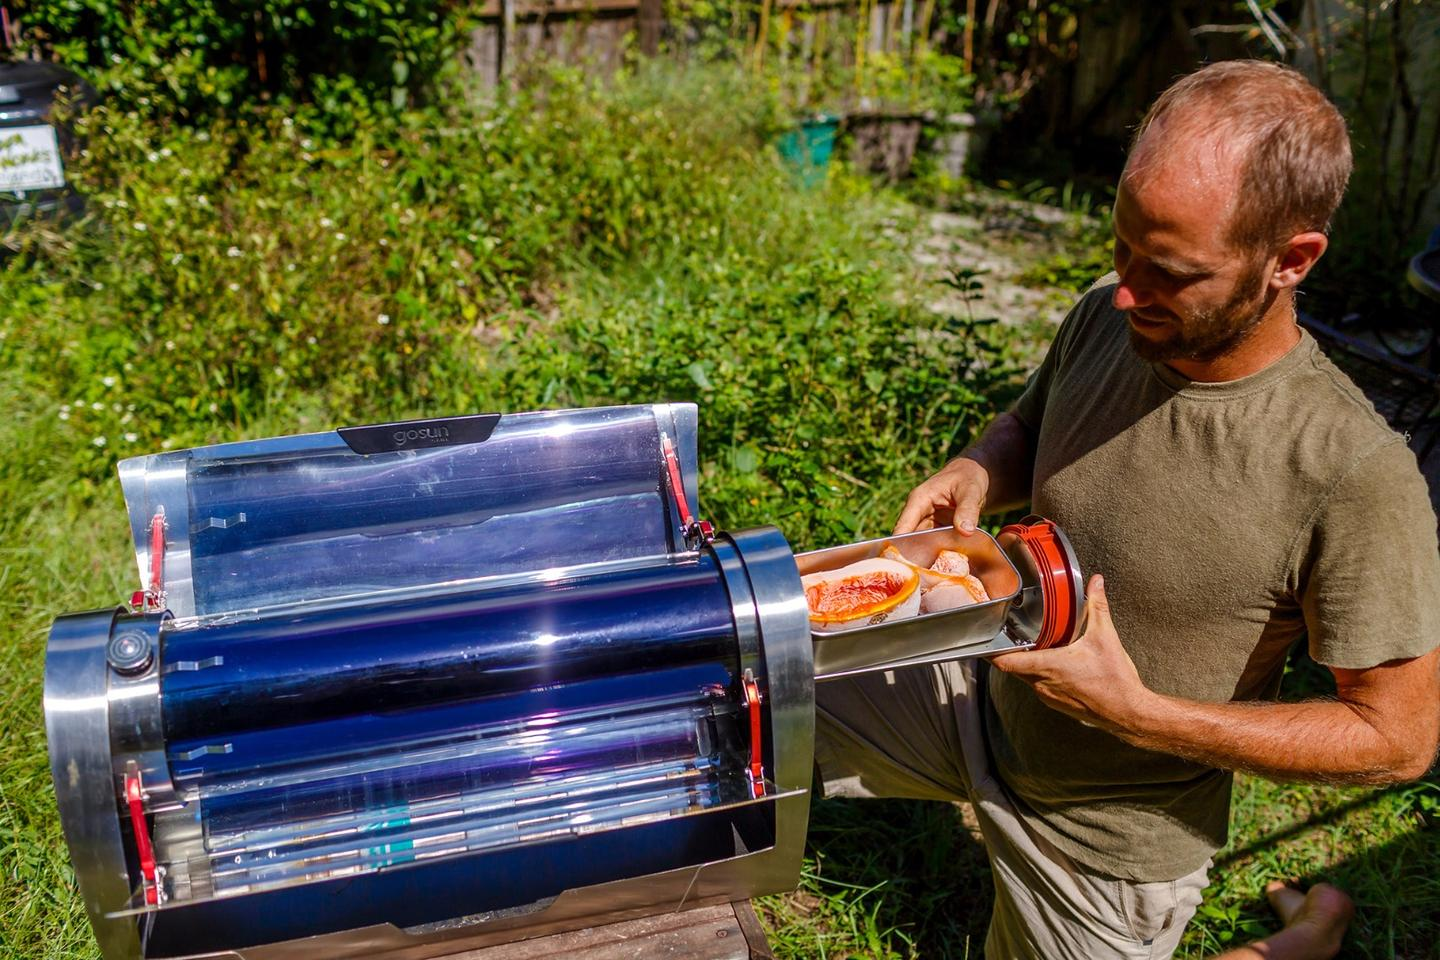 Greenfield's outdoor kitchen includes a solar oven